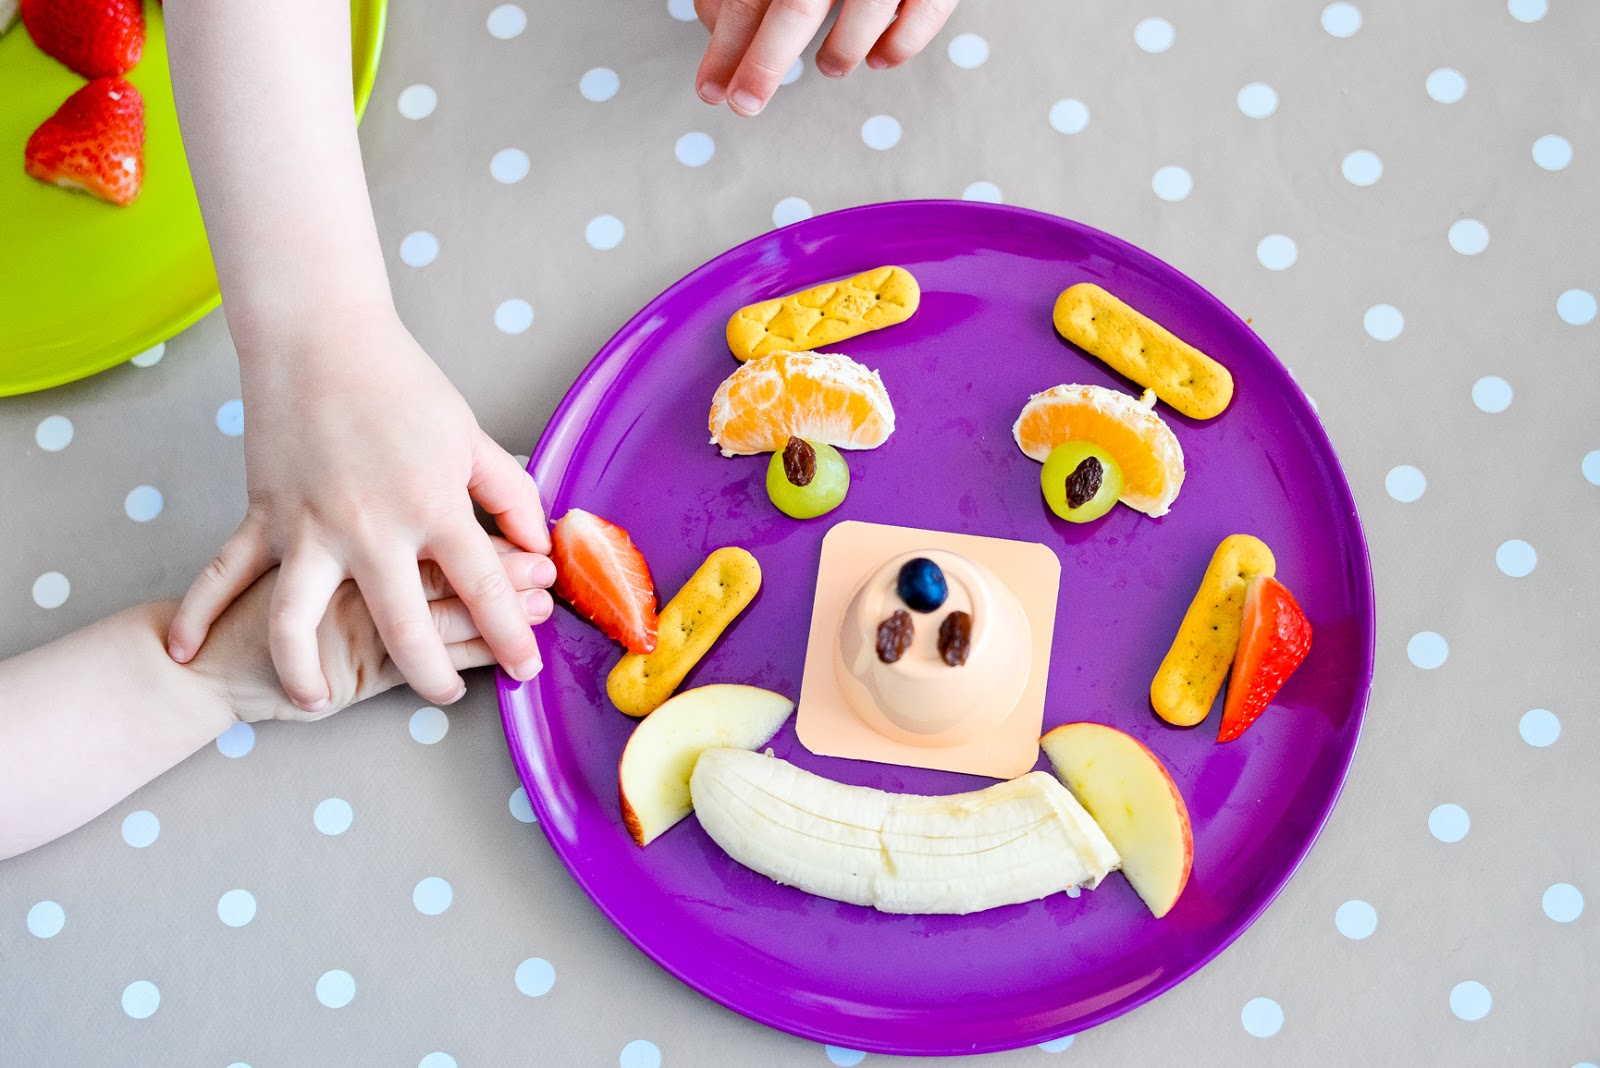 fun snack ideas for kids, toddler snack ideas, toddler snacks, healthy snacks for kids,